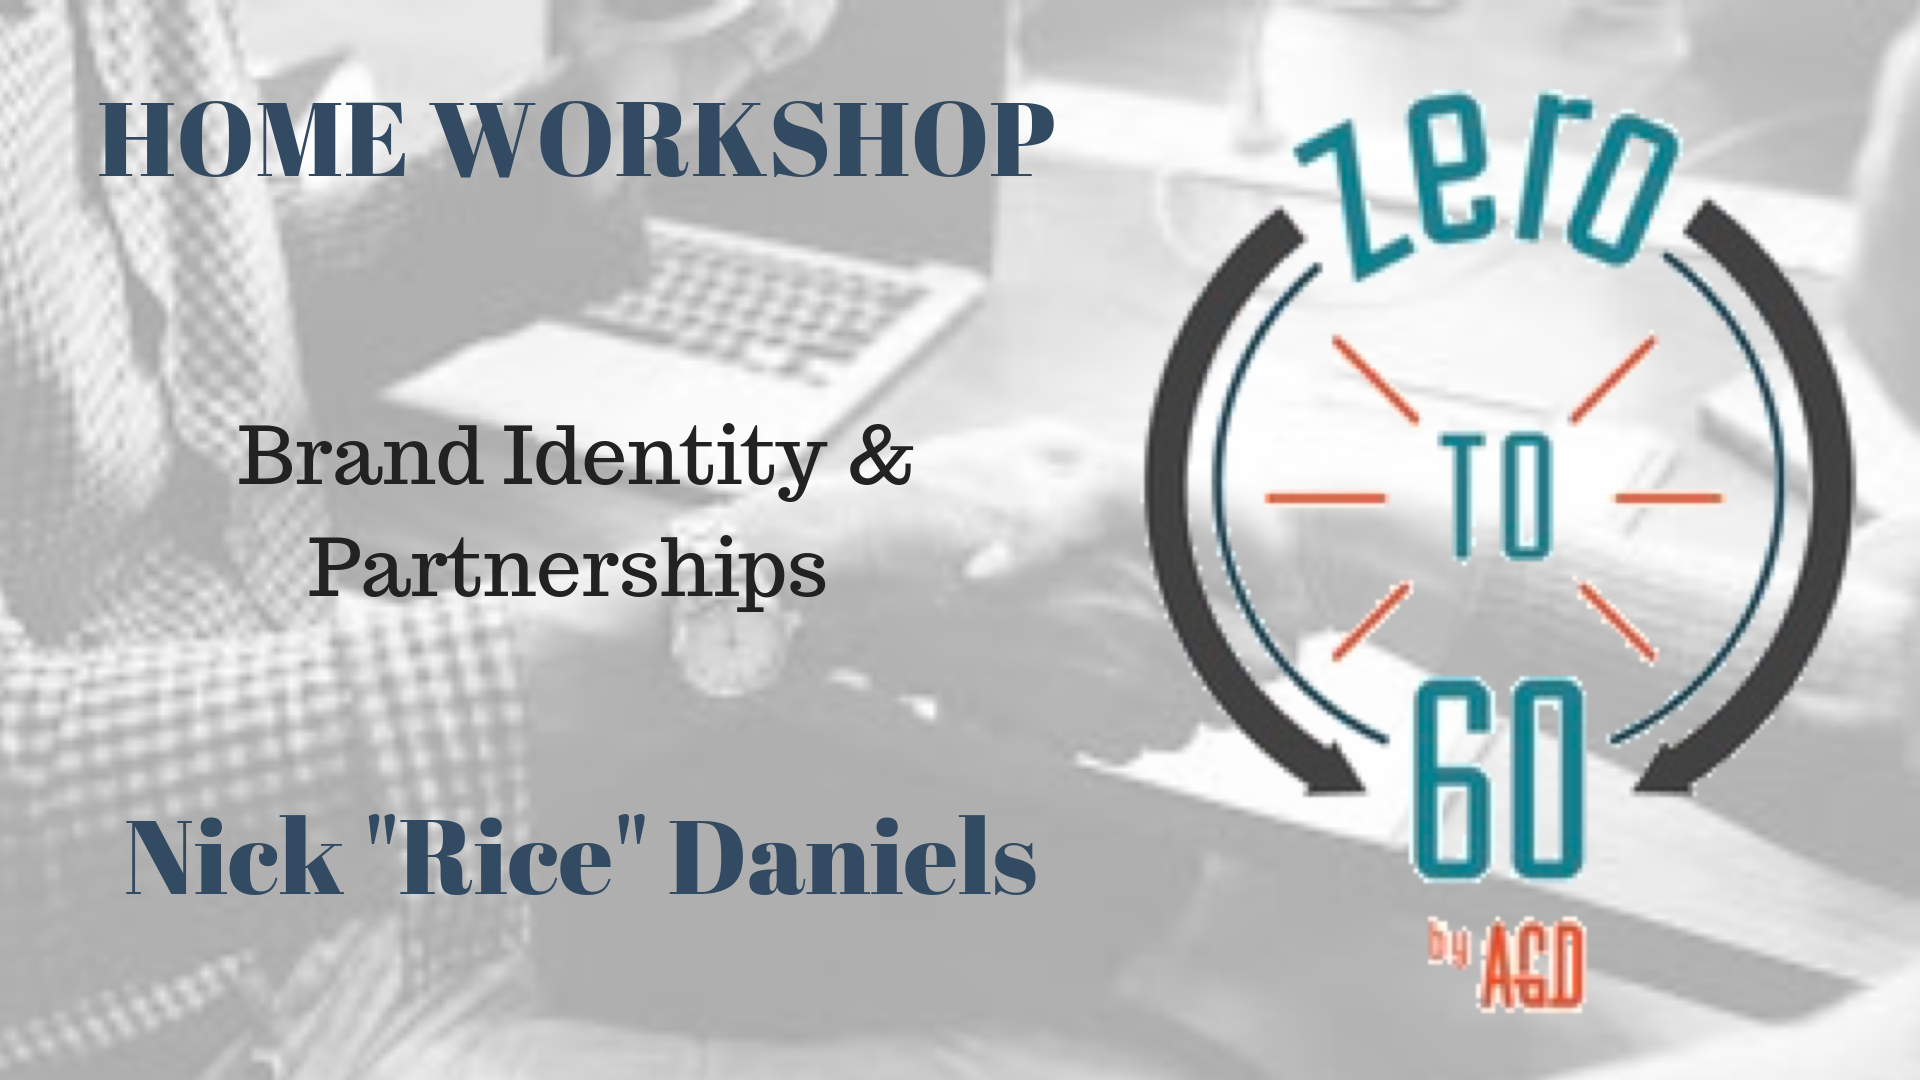 """Nick """"Rice"""" Daniels will be presenting a workshop on artist branding derived from the concepts and philosophies included in the Zero to 60 program.  Outline:  The Visual Team Establishing branding guidelines the content  Brand Partnerships (including TV and film)  There will be a Q&A at the end of the workshop with Rice and the Zero to 60 Author/COO Nathan Dohse"""